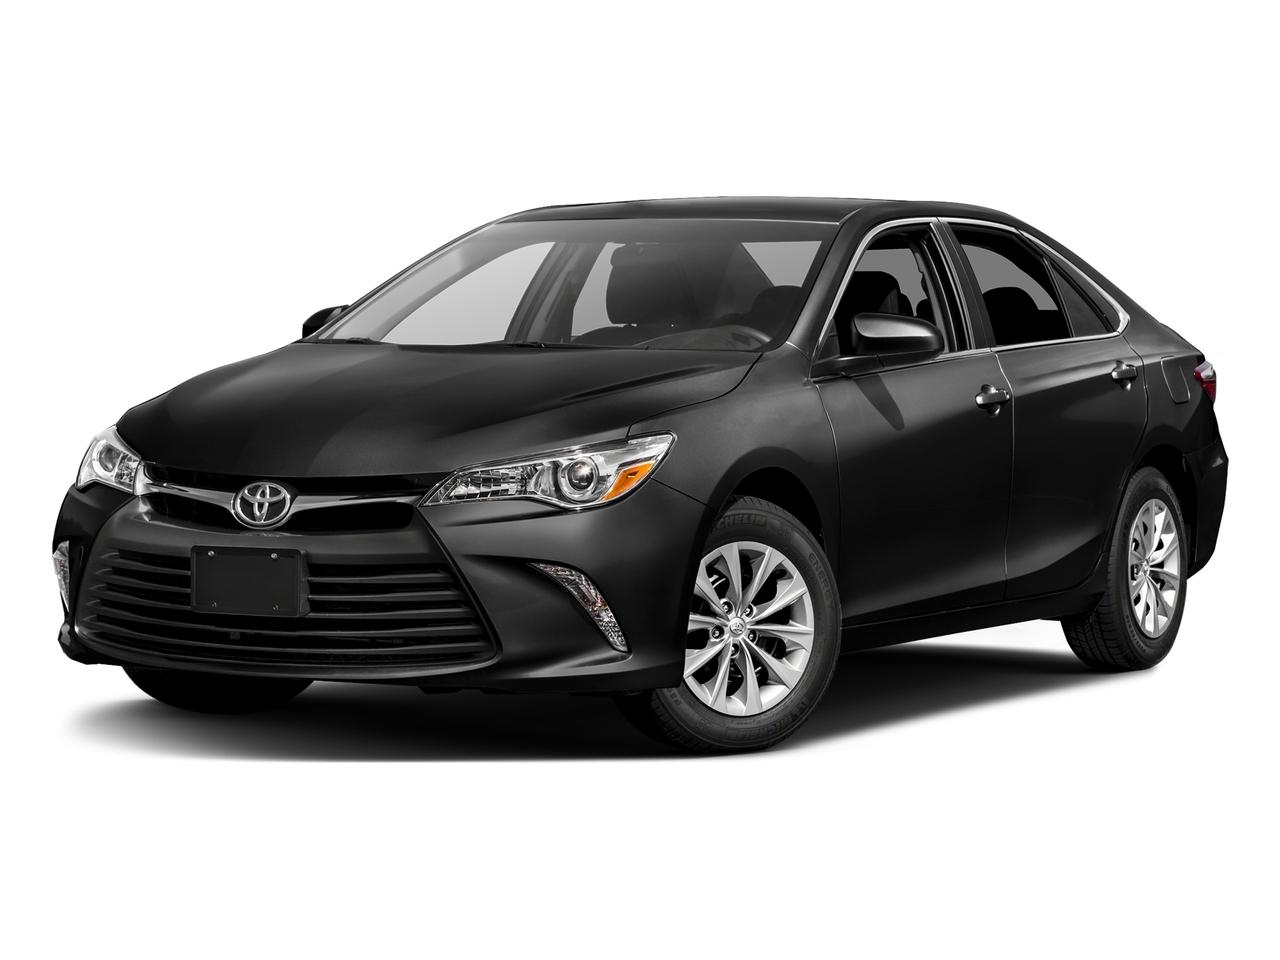 2016 Toyota Camry Vehicle Photo in Gardner, MA 01440